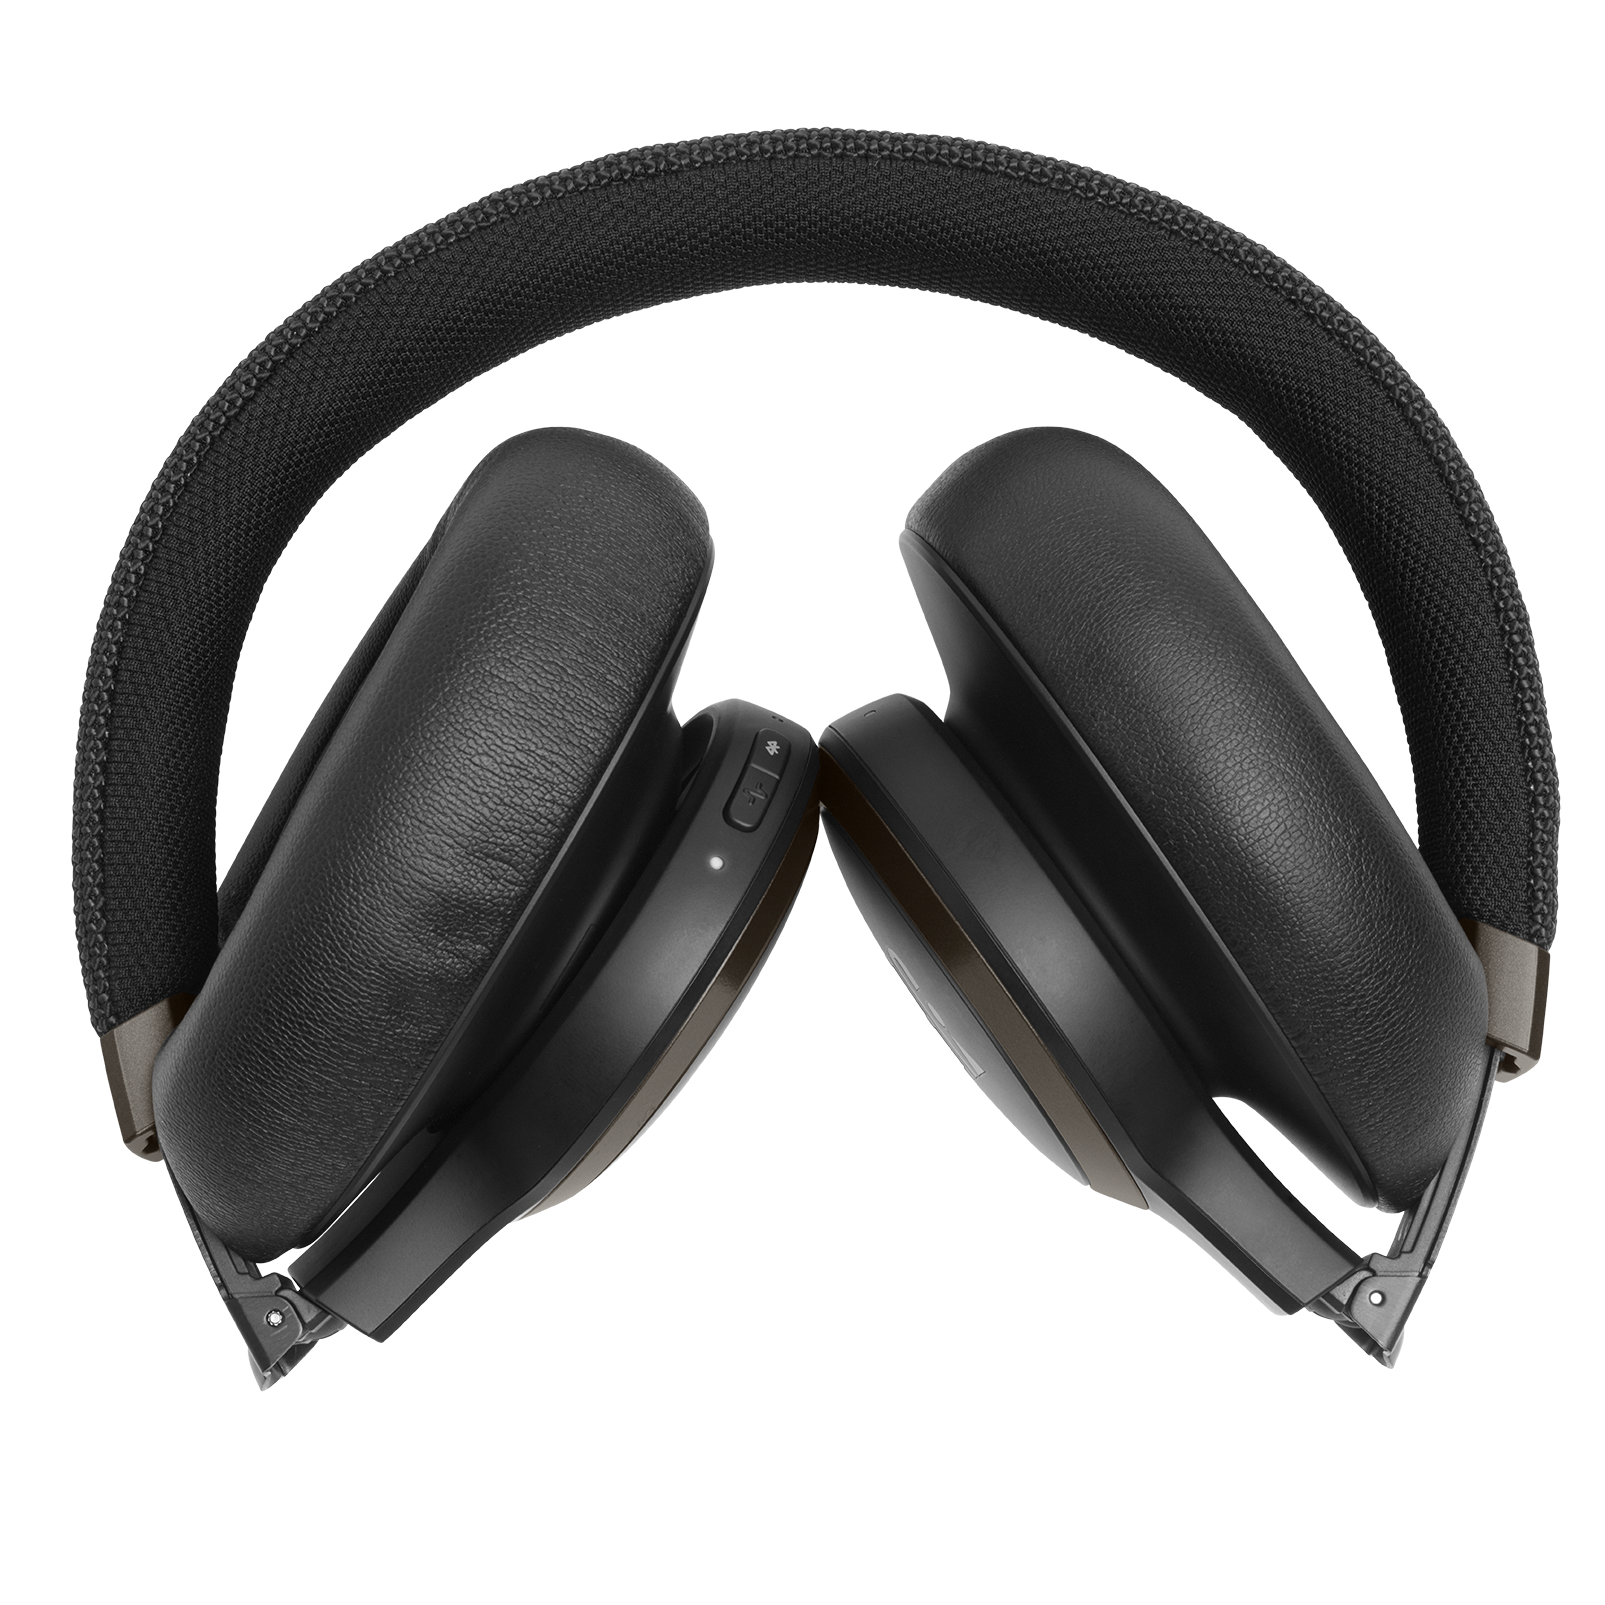 JBL LIVE 650BTNC - Black - Wireless Over-Ear Noise-Cancelling Headphones - Detailshot 8